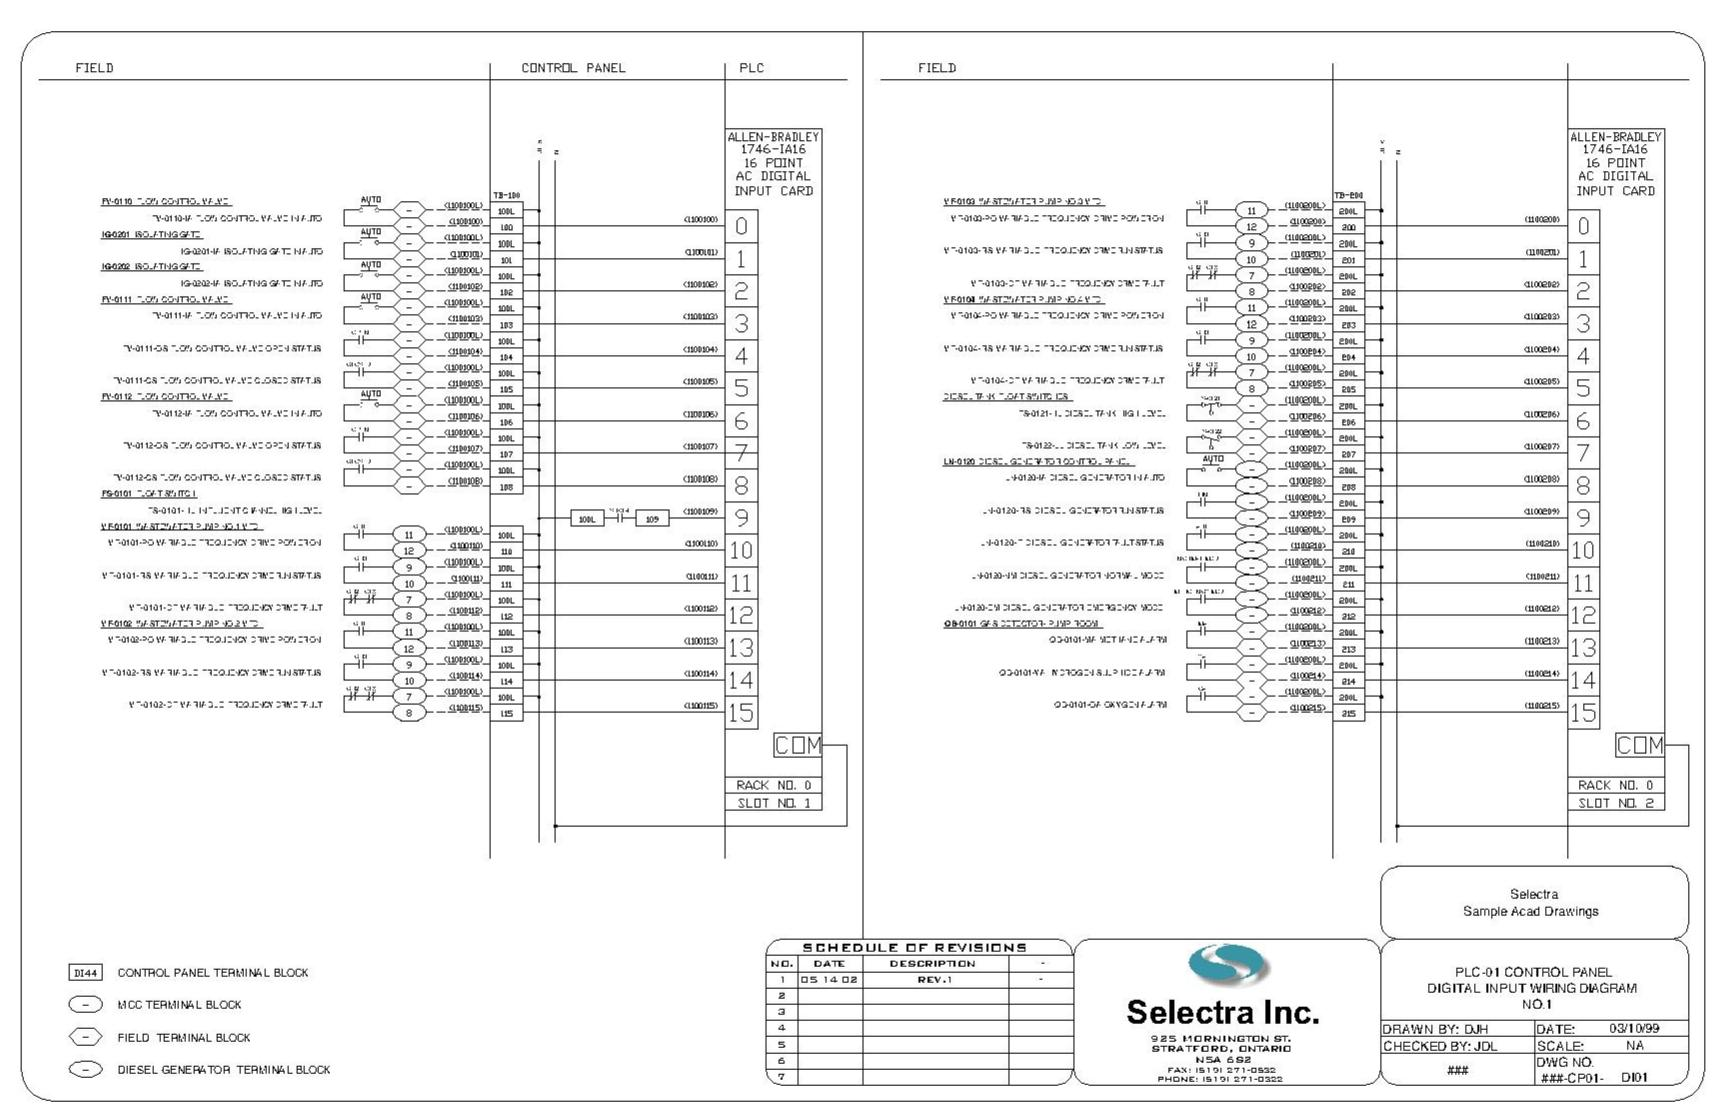 ab di01 Model 1 phase starter panel 1746 ob16 wiring diagram at soozxer.org